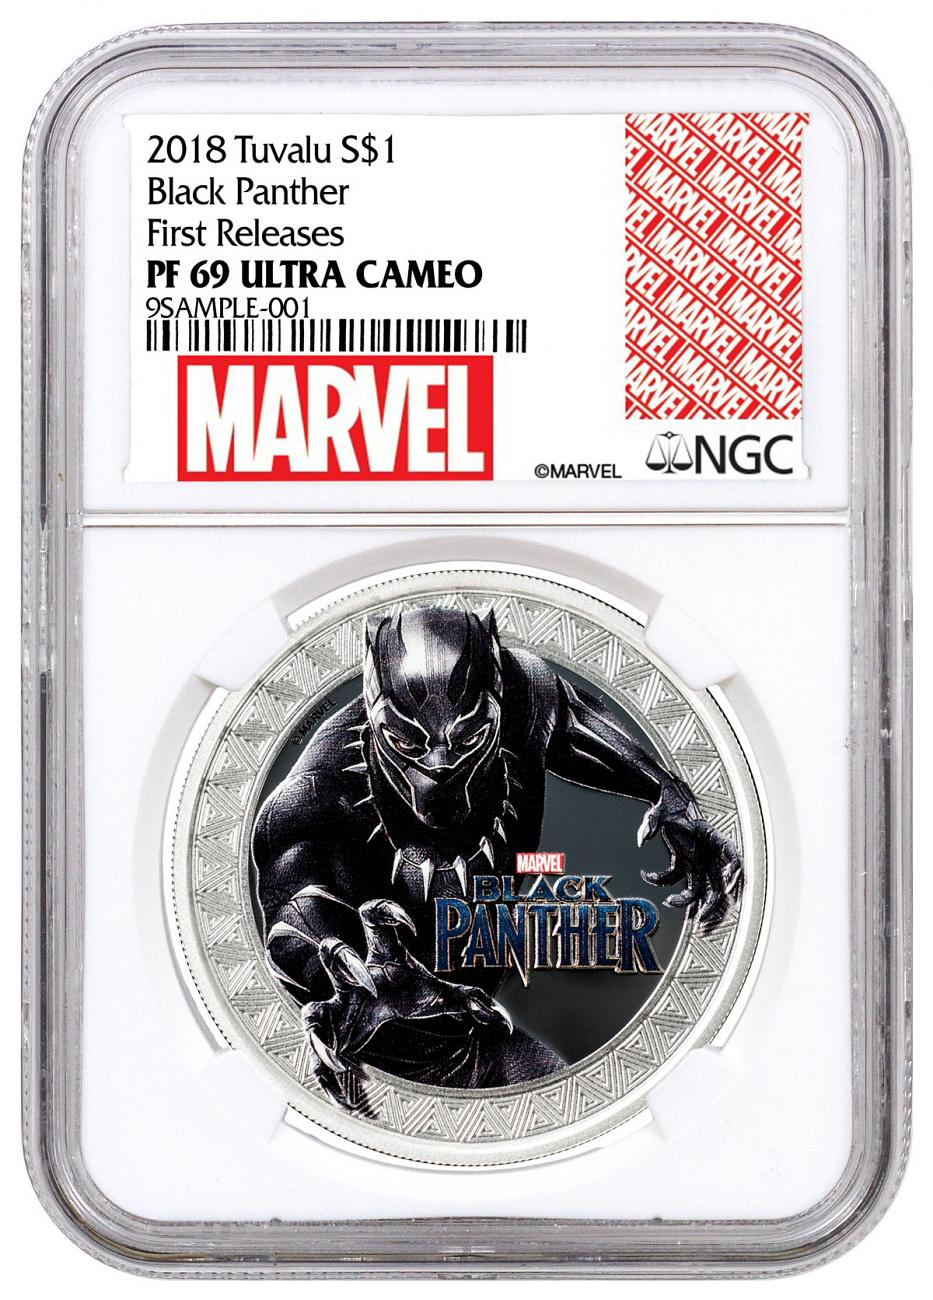 2018 Tuvalu Marvel Series - Black Panther 1 oz Silver Colorized Proof $1 Coin NGC PF69 UC FR Exclusive Marvel Label